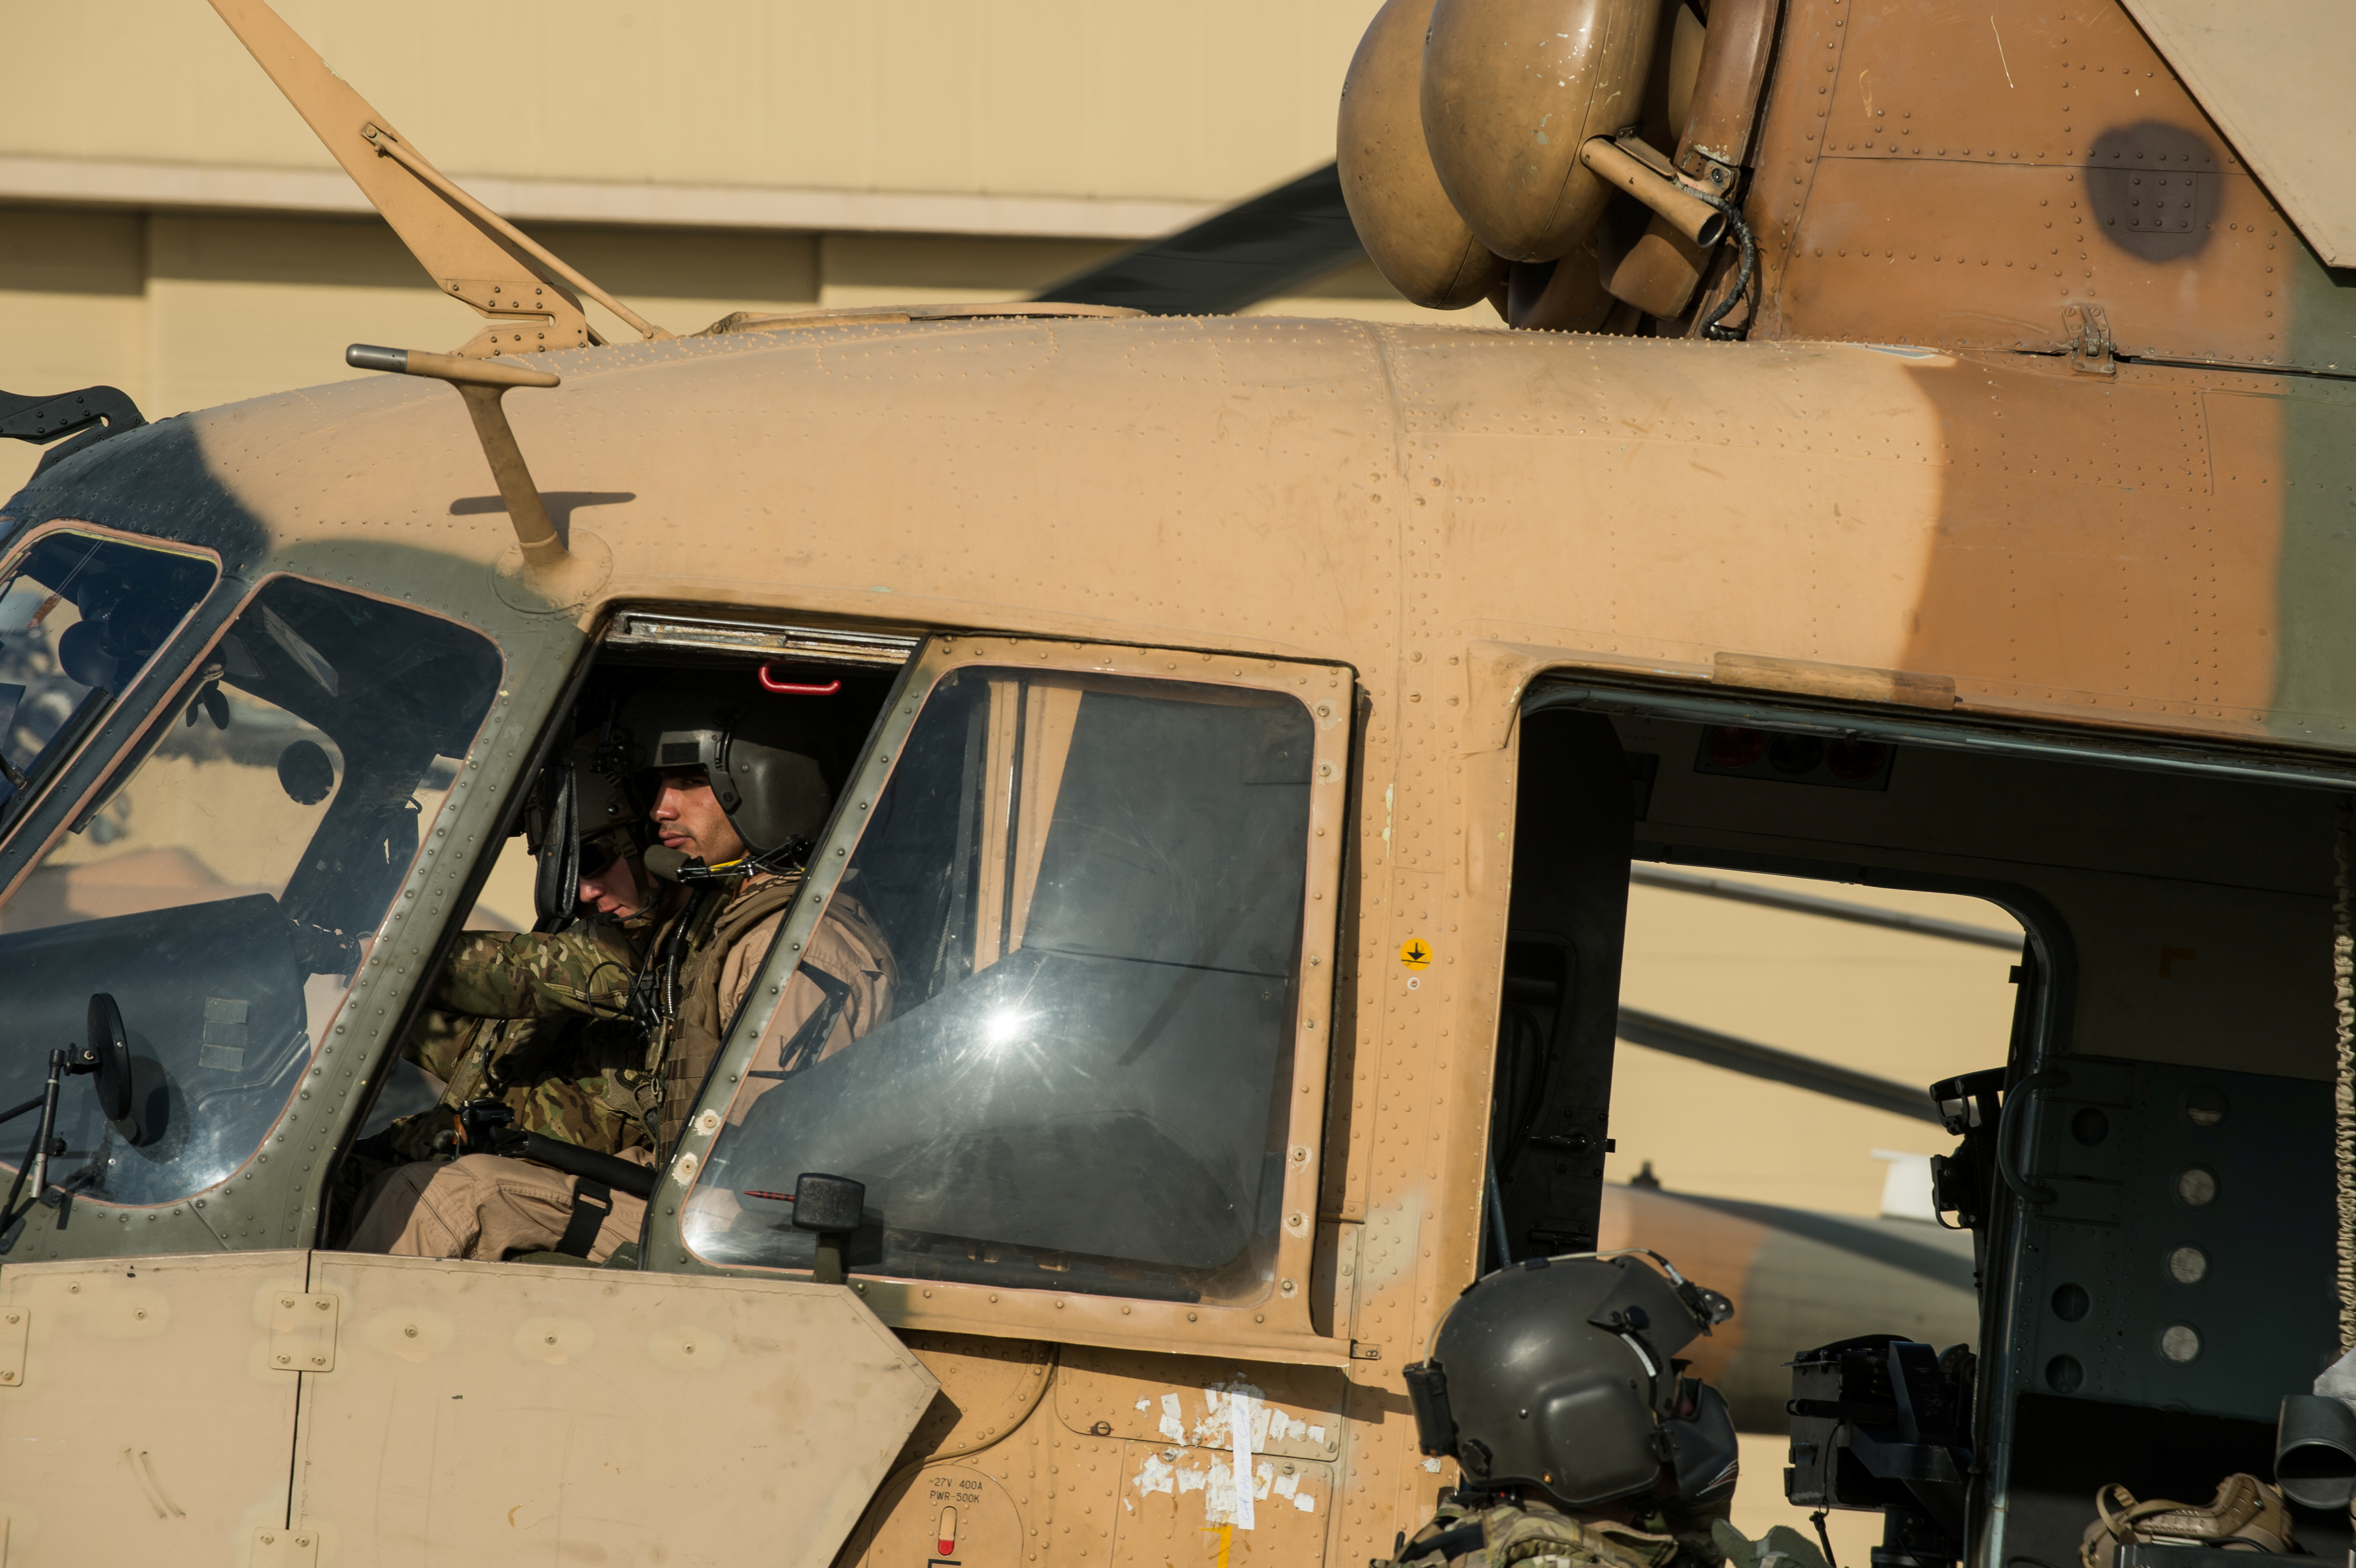 An Afghan Air Force Mi-17 helicopter pilot prepares to depart, to be the air support for the final scenario of Air Liaison Officer School, at Kabul International Airport, Afghanistan November 25, 2014. Picture taken November 25, 2014. To match Special Report USA-AFGHANISTAN/PILOTS     U.S. Air Force/Staff Sgt. Perry Aston/Handout via REUTERS